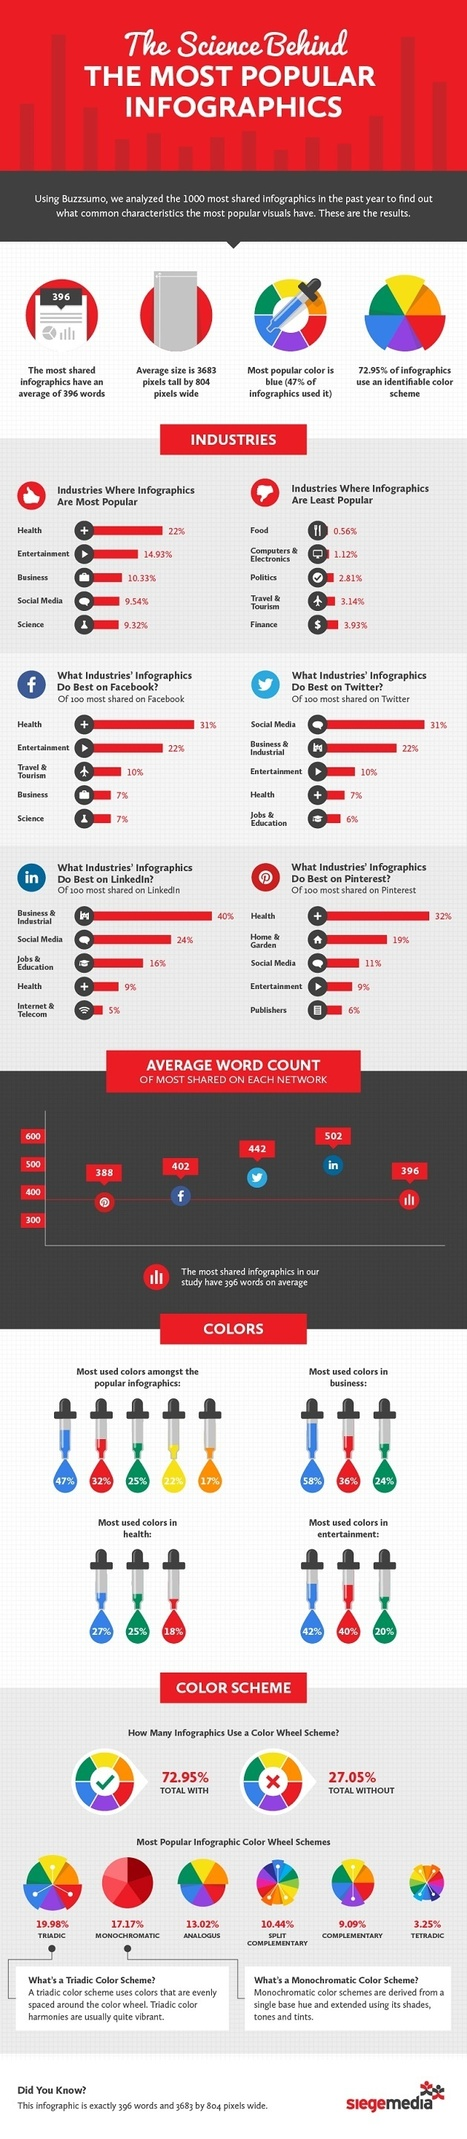 The Science Behind the Most Popular Infographics [Infographic] | Integrated Brand Communications | Scoop.it